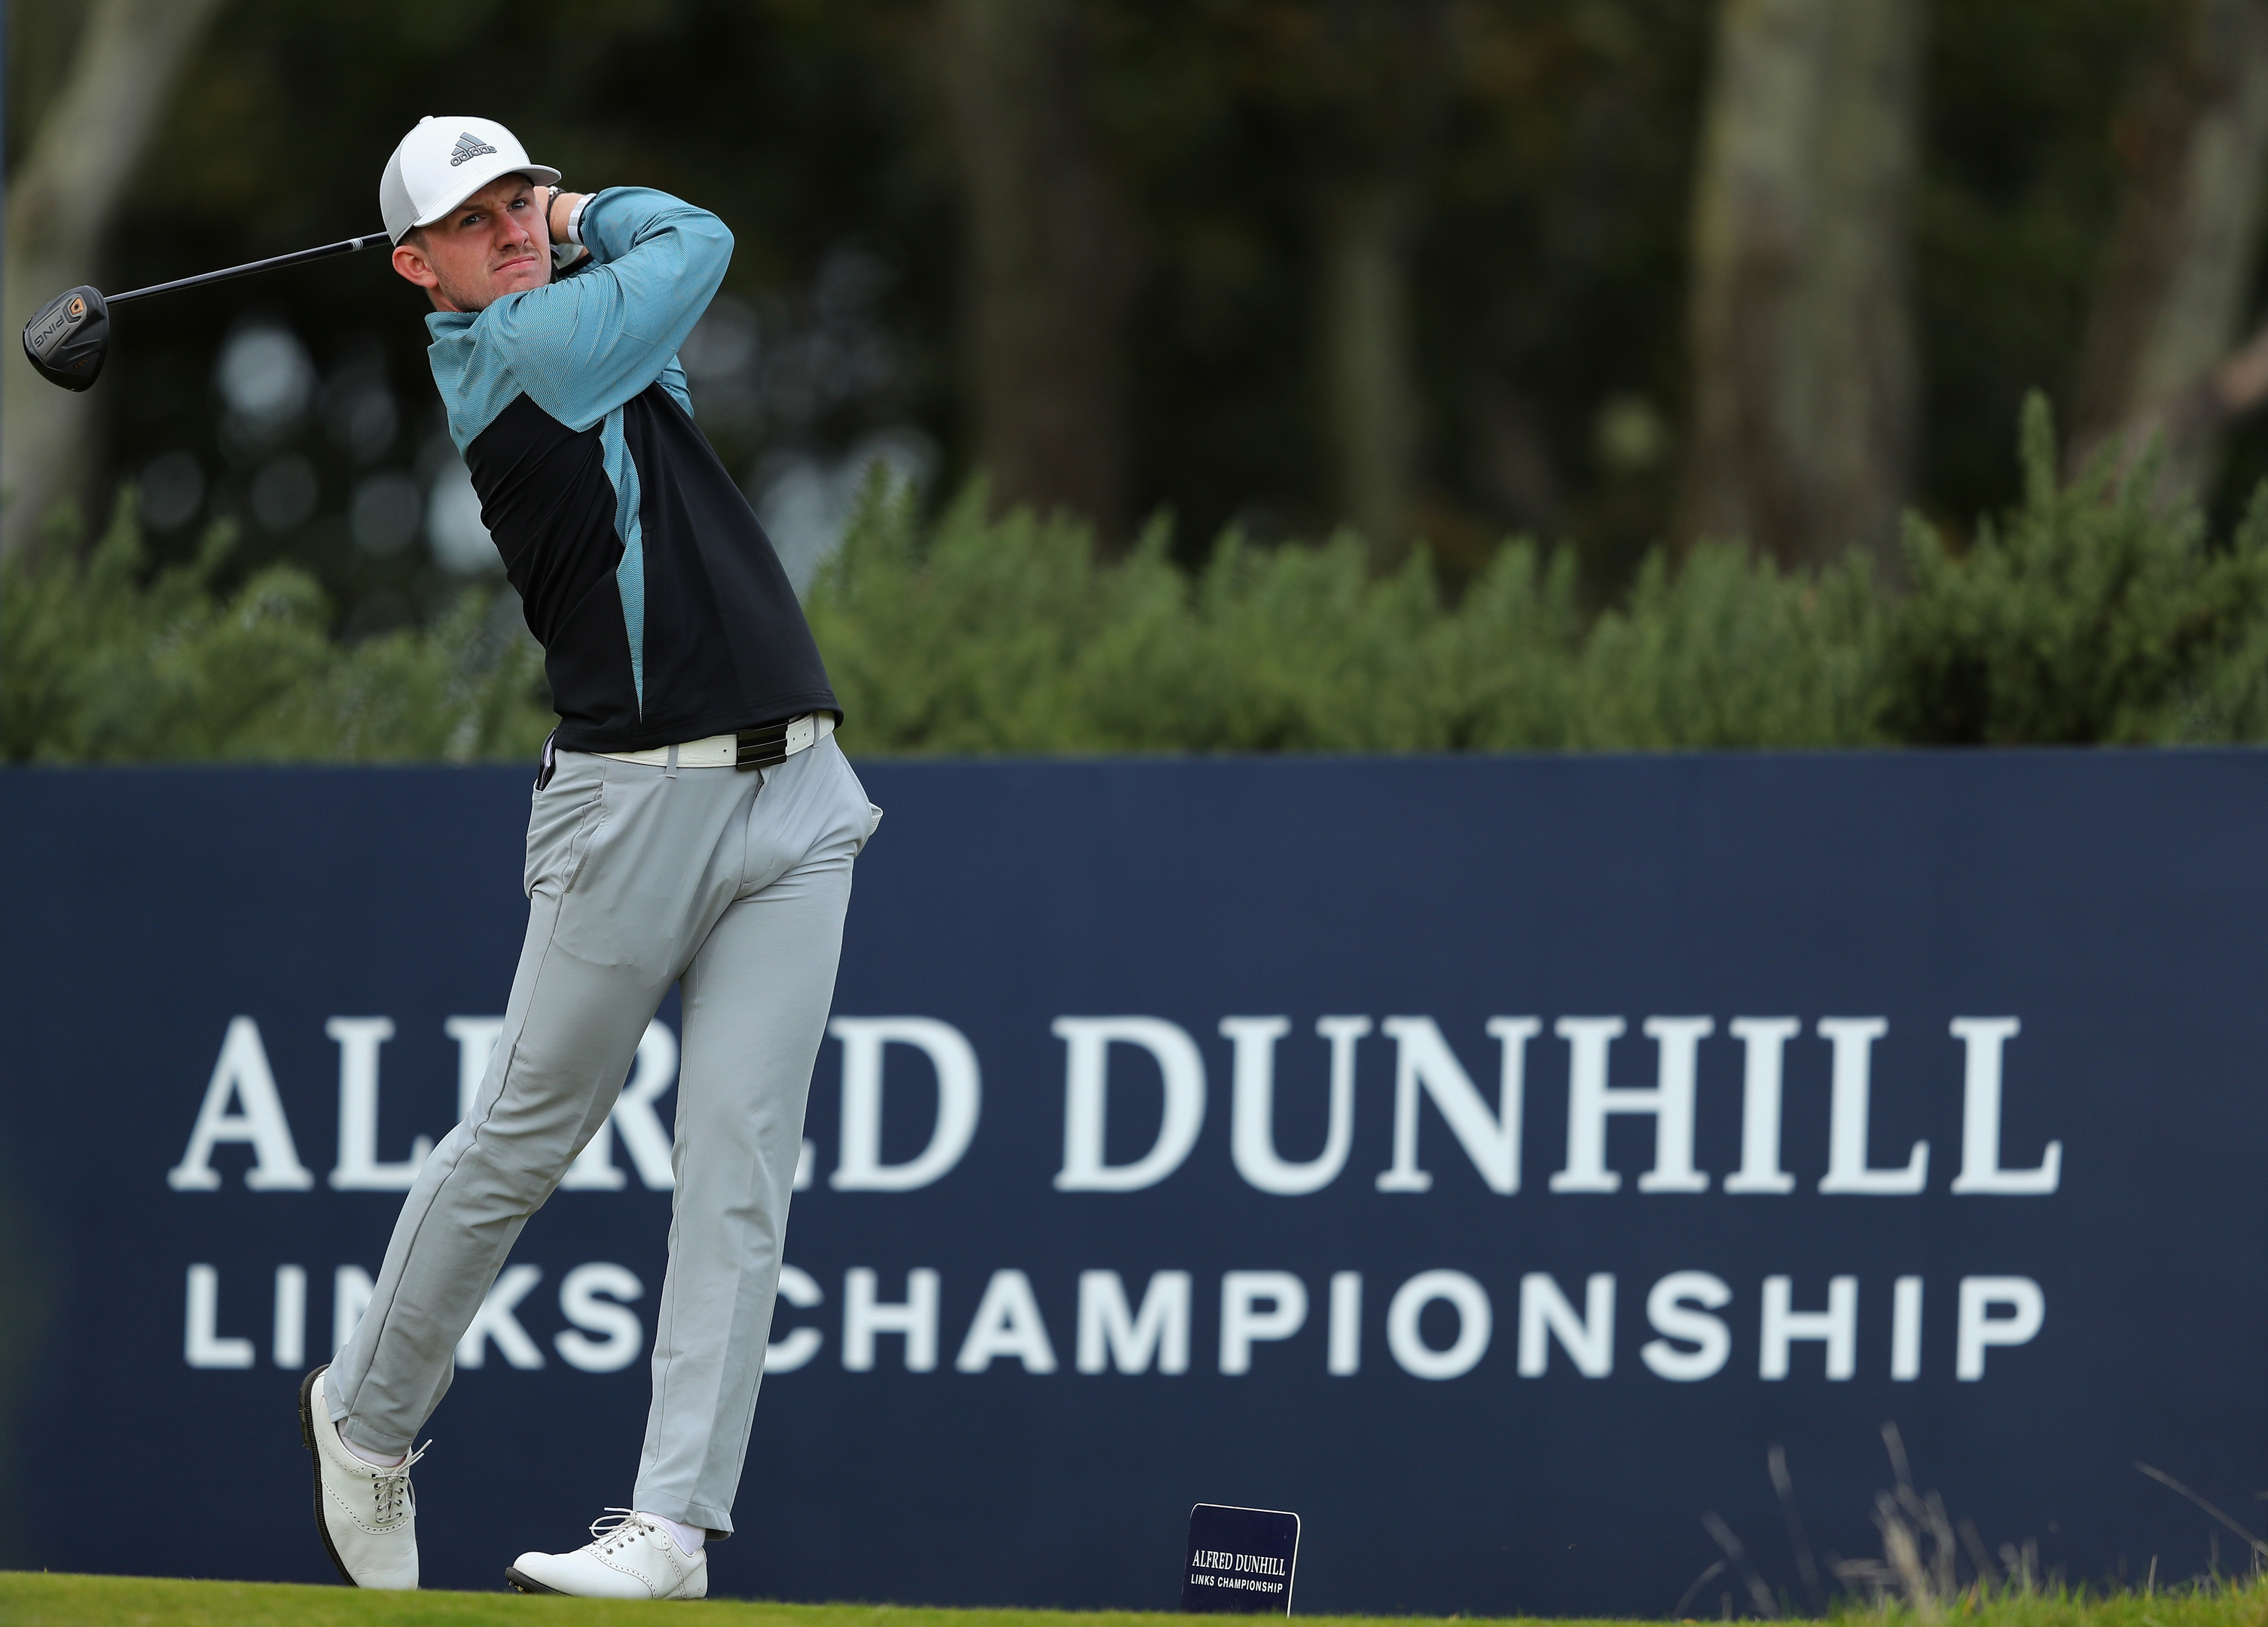 Connor Syme had his second top 15 finish in as many pro starts at the Alfred Dunhill LInks Championship.